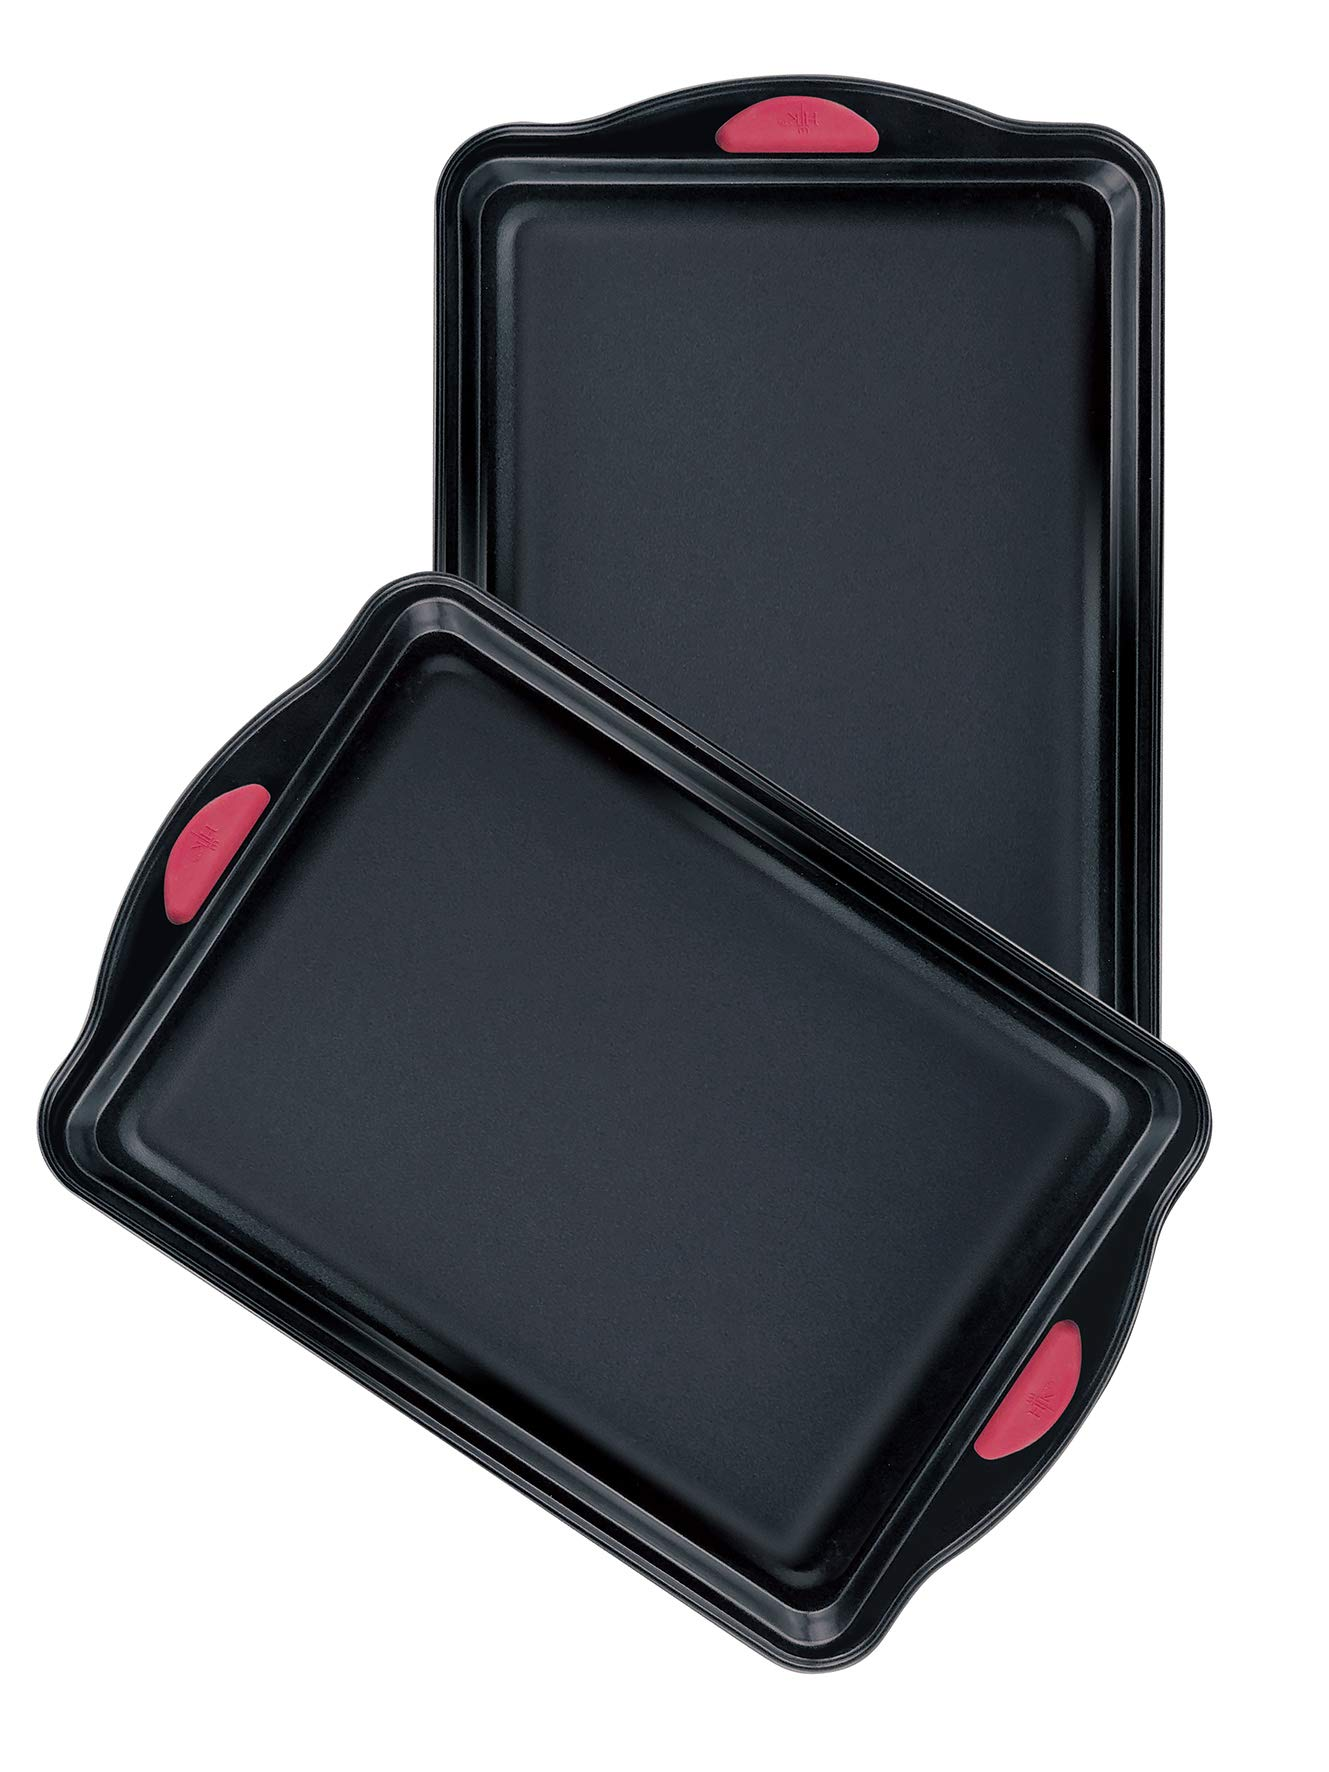 Hell's Kitchen Nonstick 8 Piece Ultimate Bakeware Set - Baking Pans and Baking Sheet in Non Stick with Red Silicone Grips - Bakeware Set includes Cookie, Cake, Muffin, Roasting and More by Hell's Kitchen (Image #6)